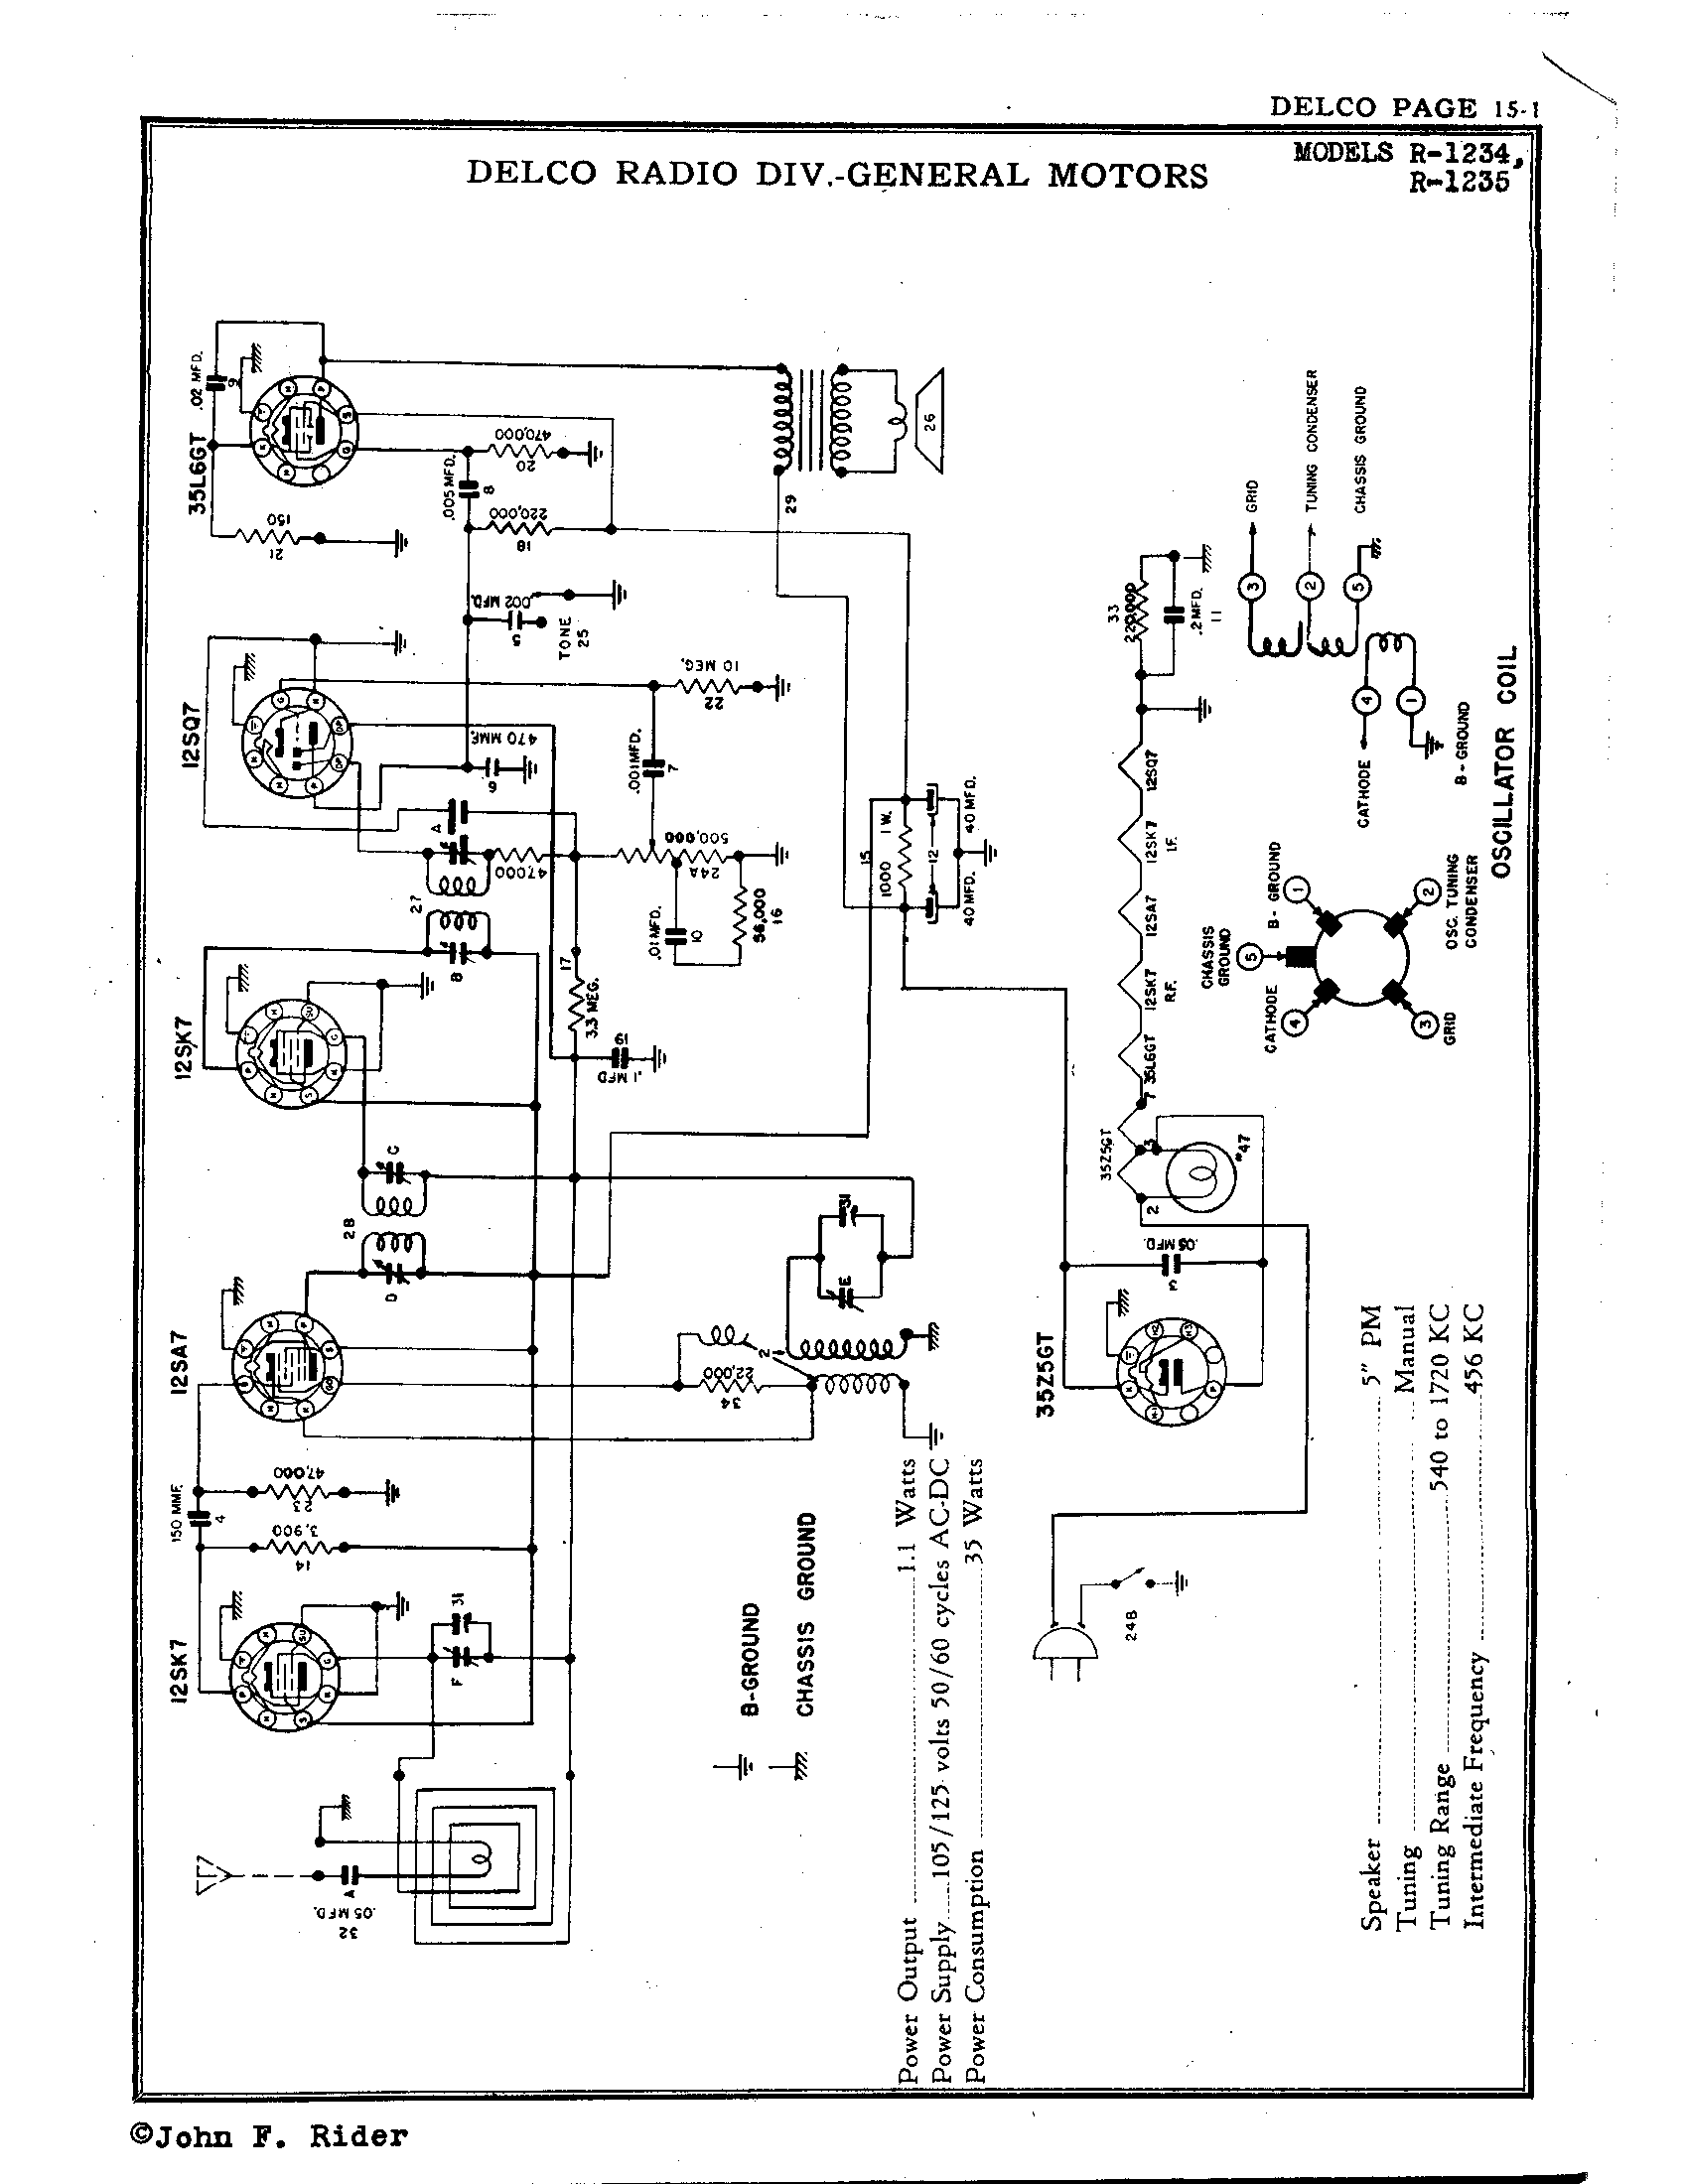 delco radio corp. r-1235 | antique electronic supply delco model 09354155 wiring diagram